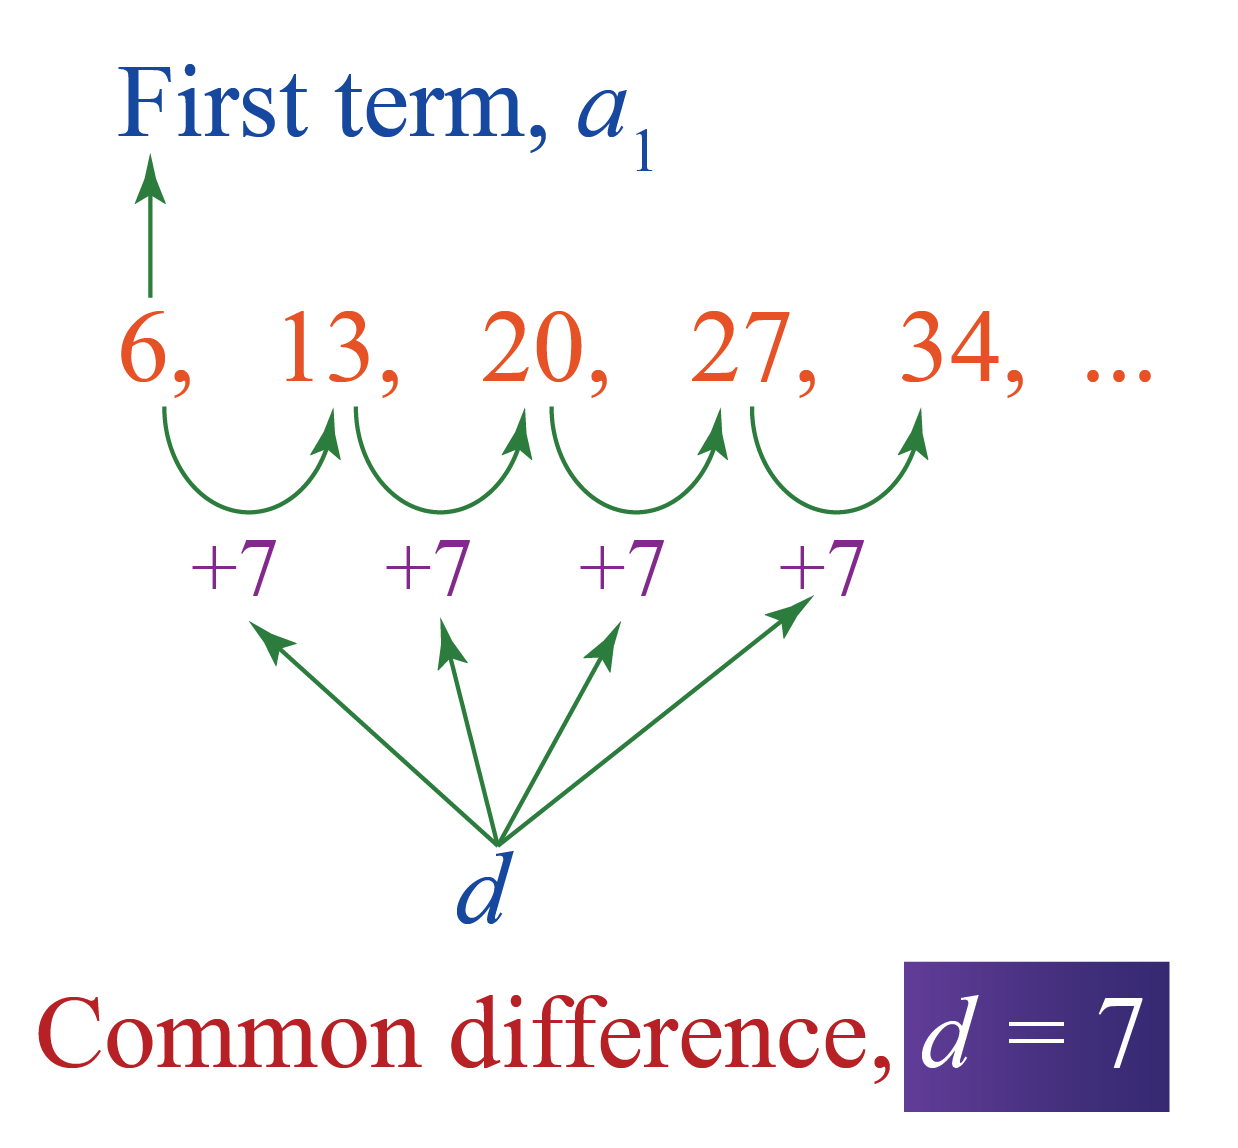 common difference of Arithmetic progression example